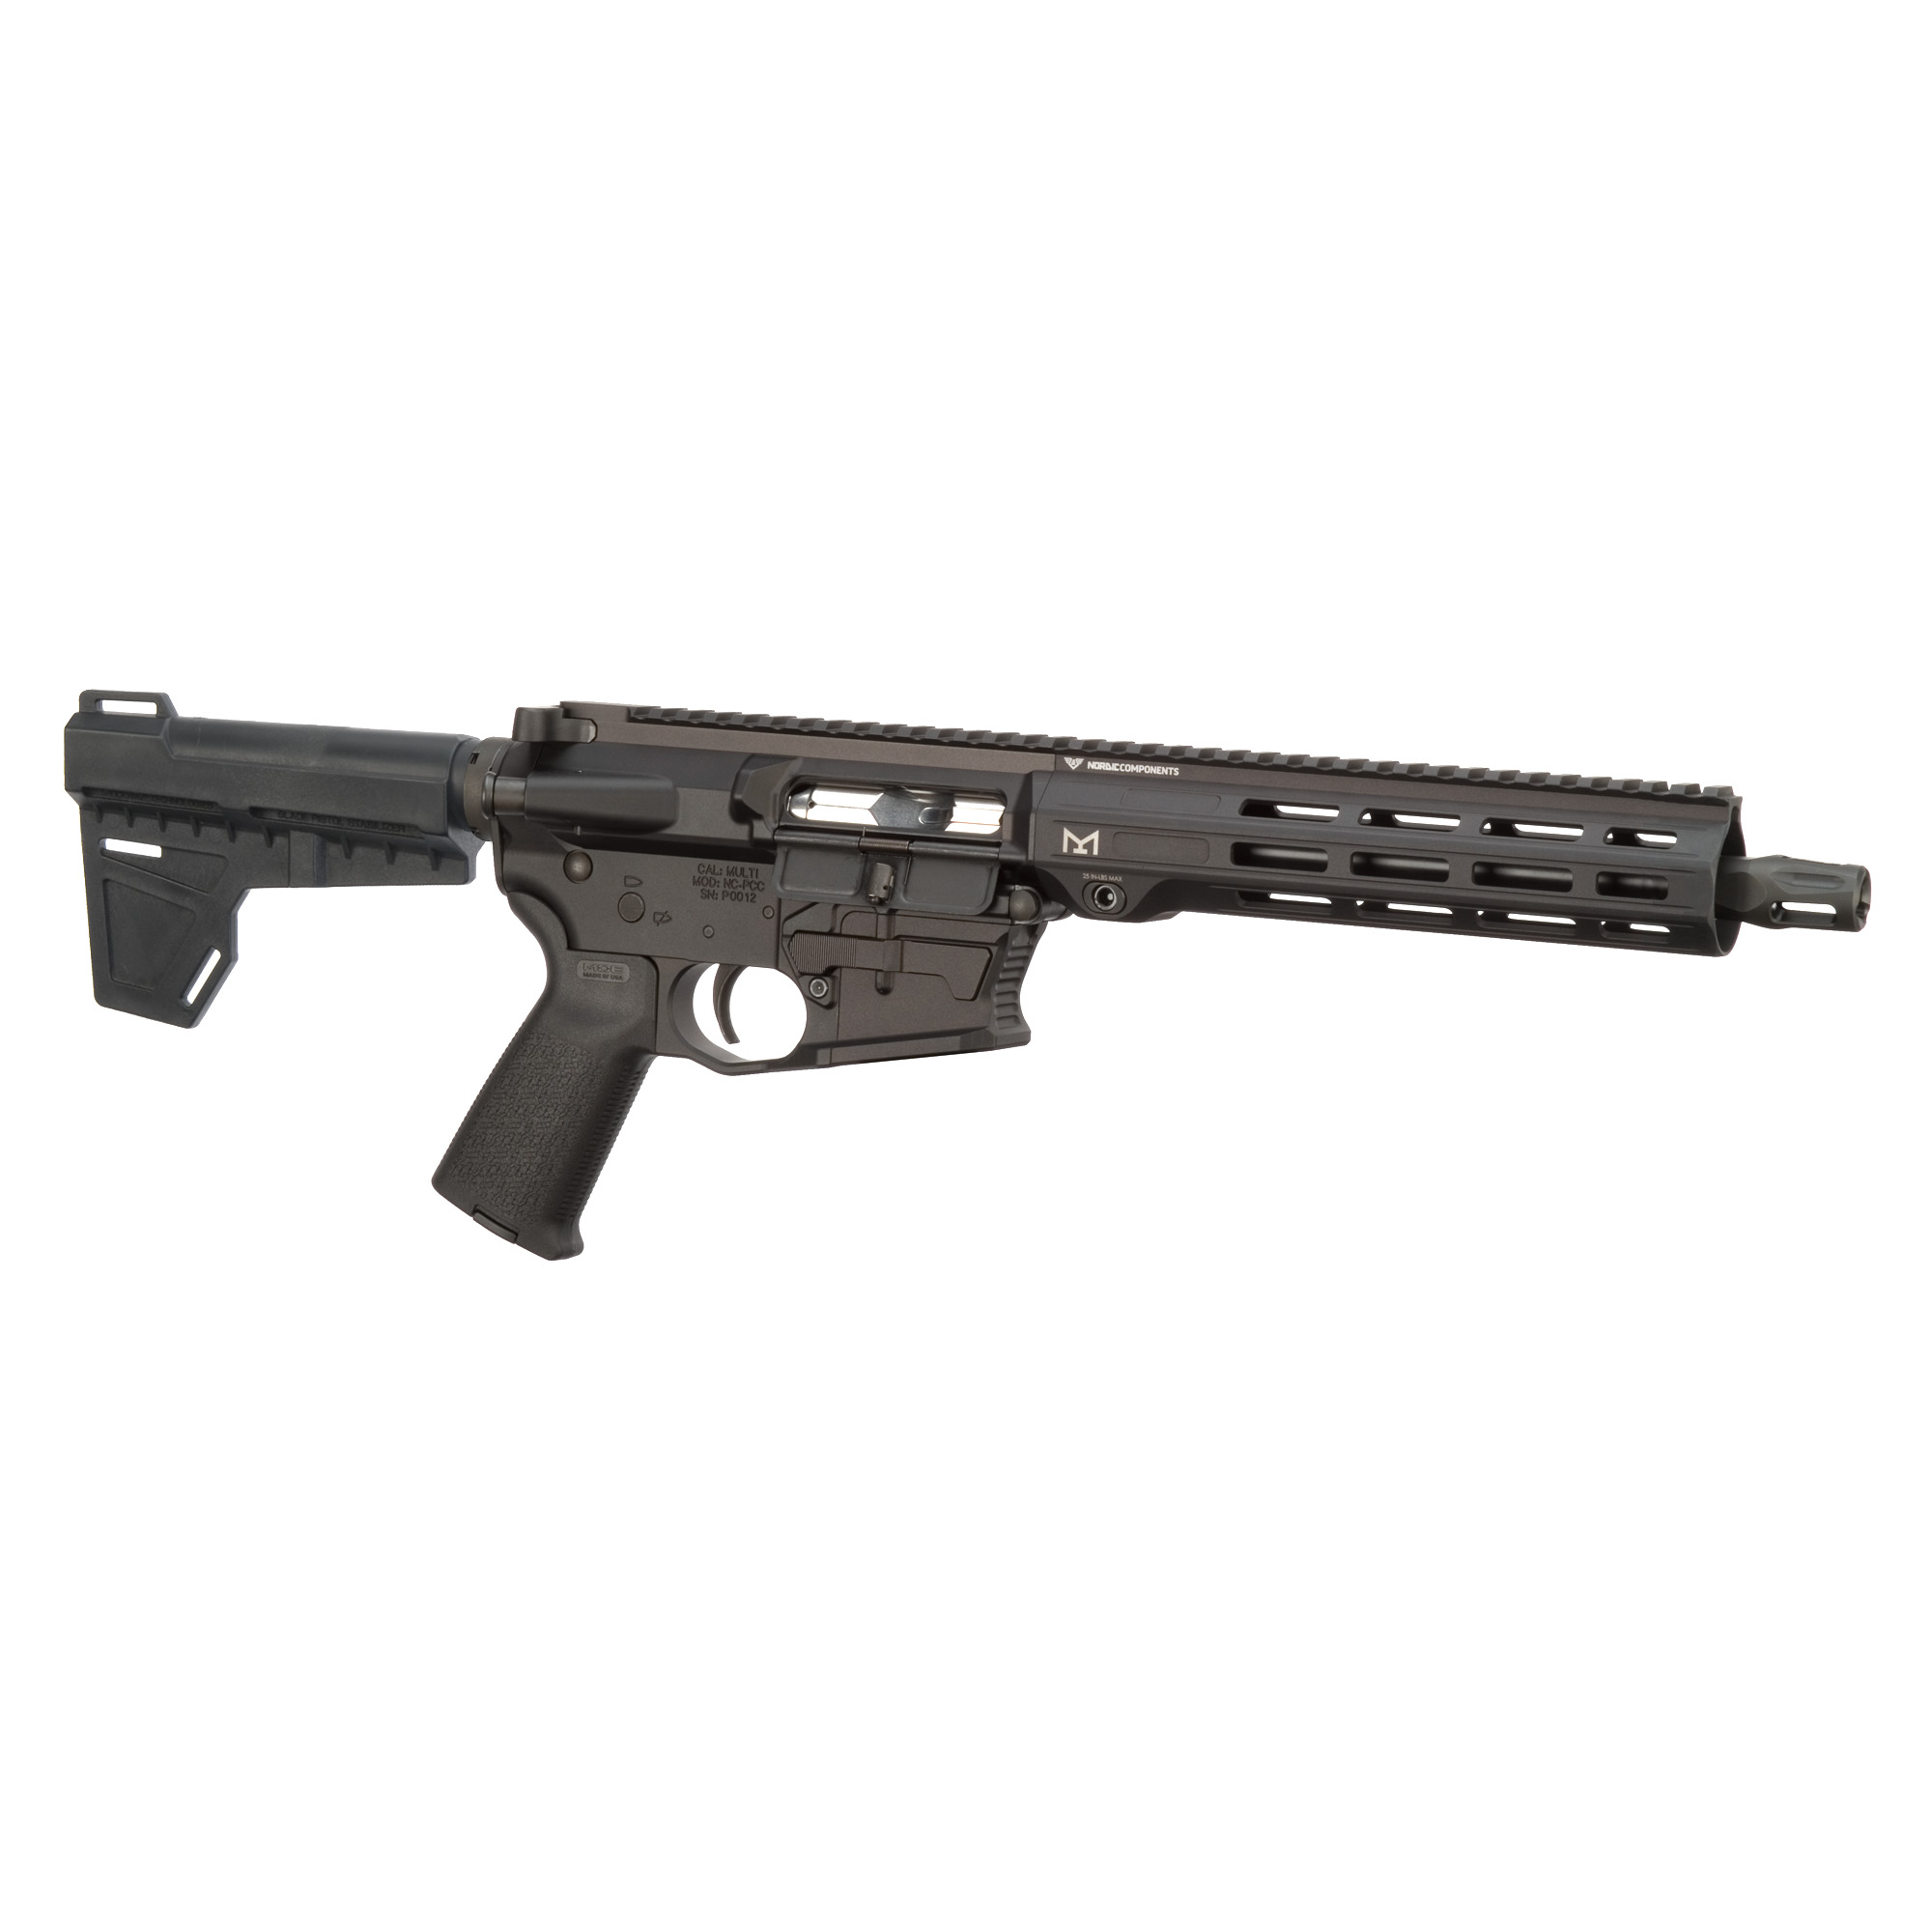 """The Pistol Caliber Carbine features a patented modular lower receiver"""" with removable / interchangeable magwell"""" allowing you to use more than one style of magazine. The carbine handguard has M-LOK slots. Using the same lower"""" this PCC can be configured to run M&P magazines. Includes one 17-round magazine."""